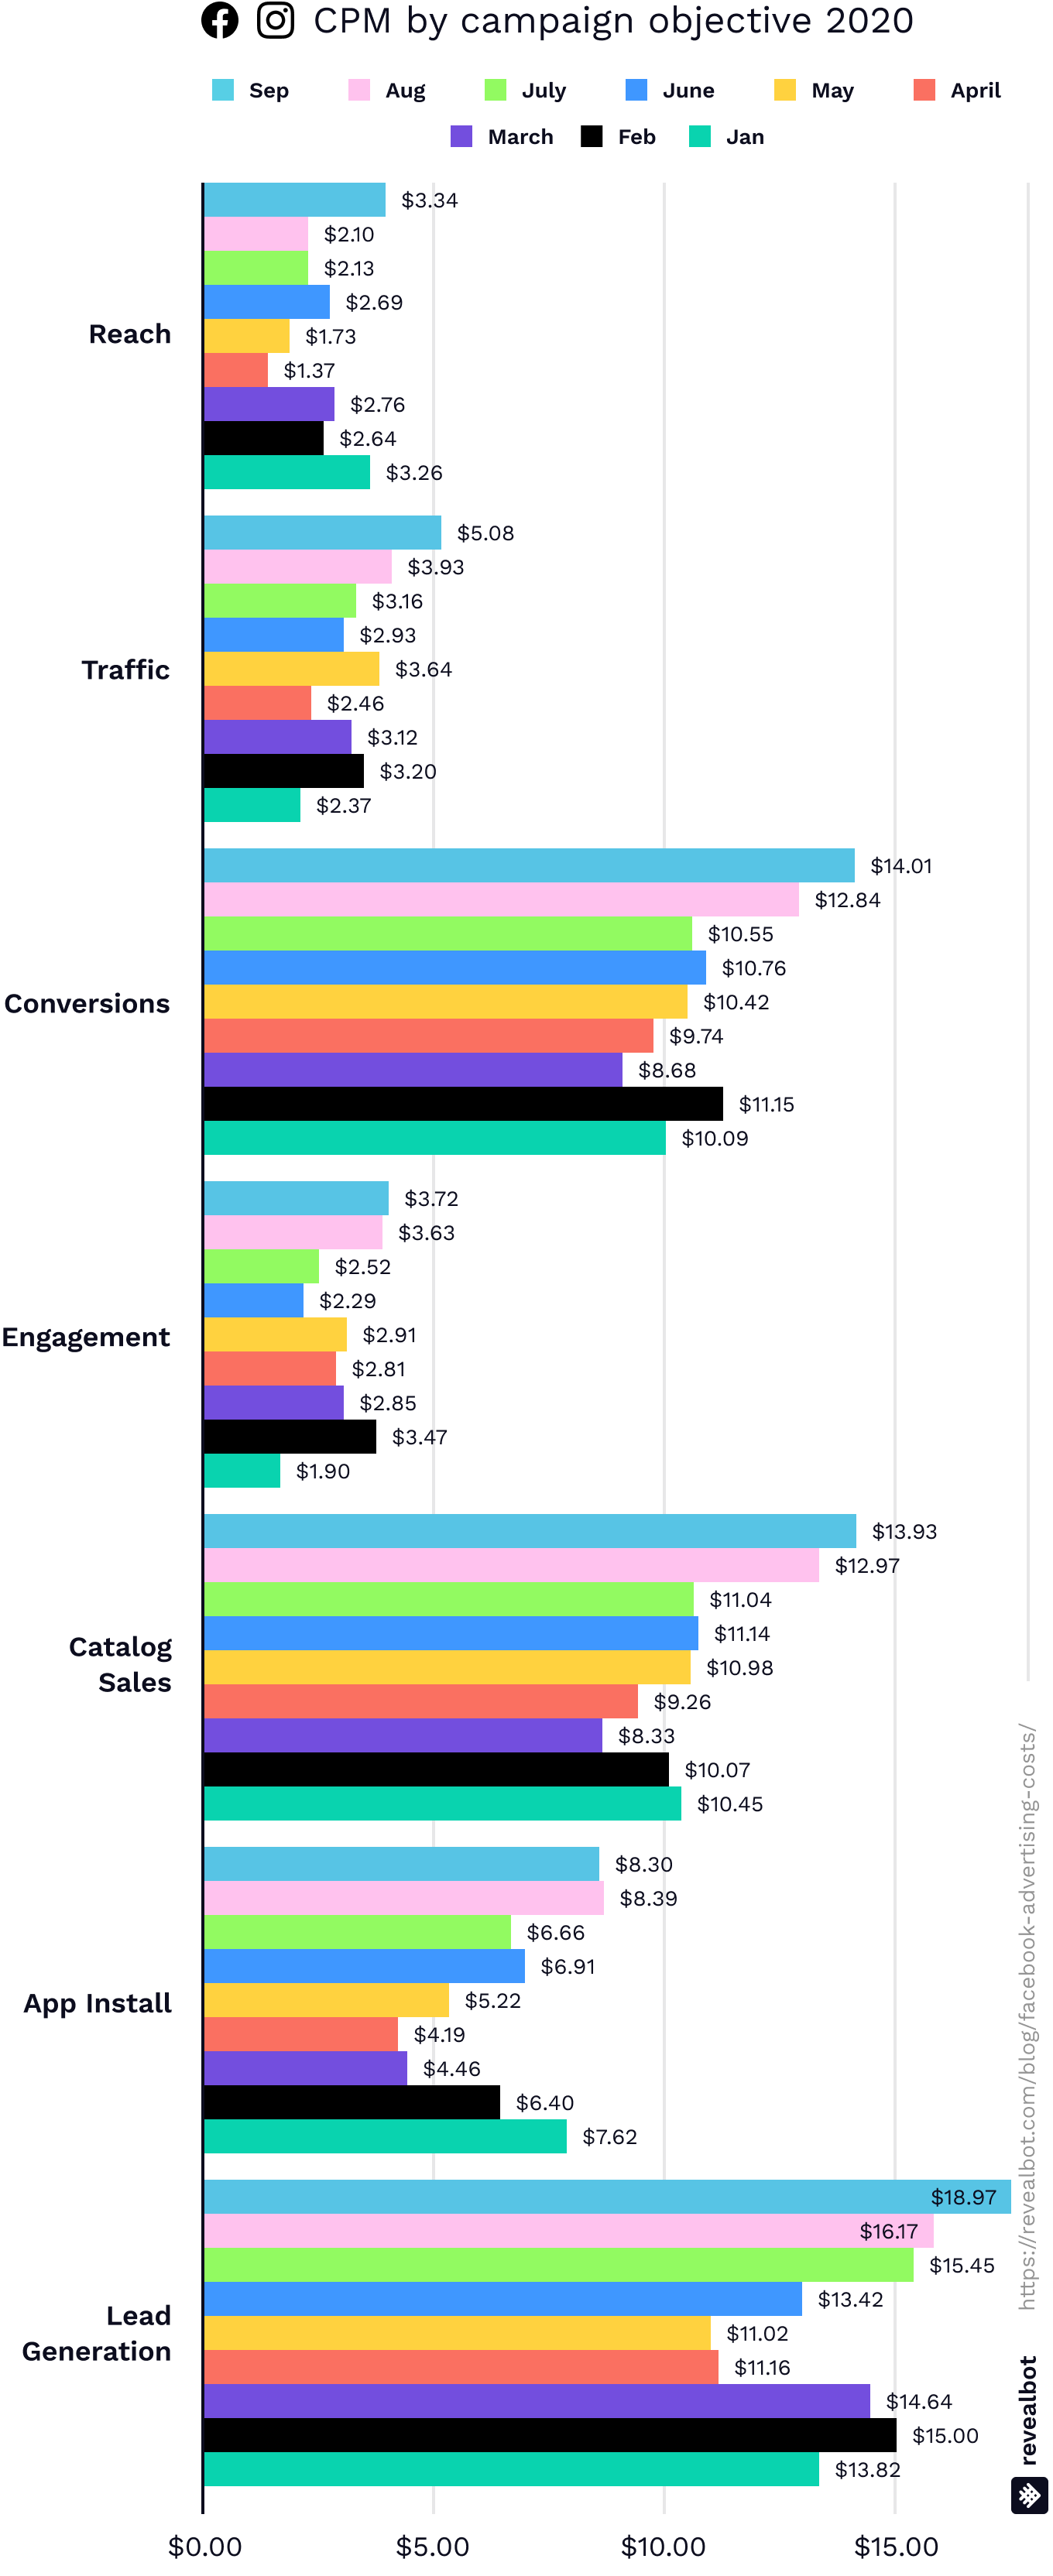 Facebook ad costs by CPM by campaign objective September 2020